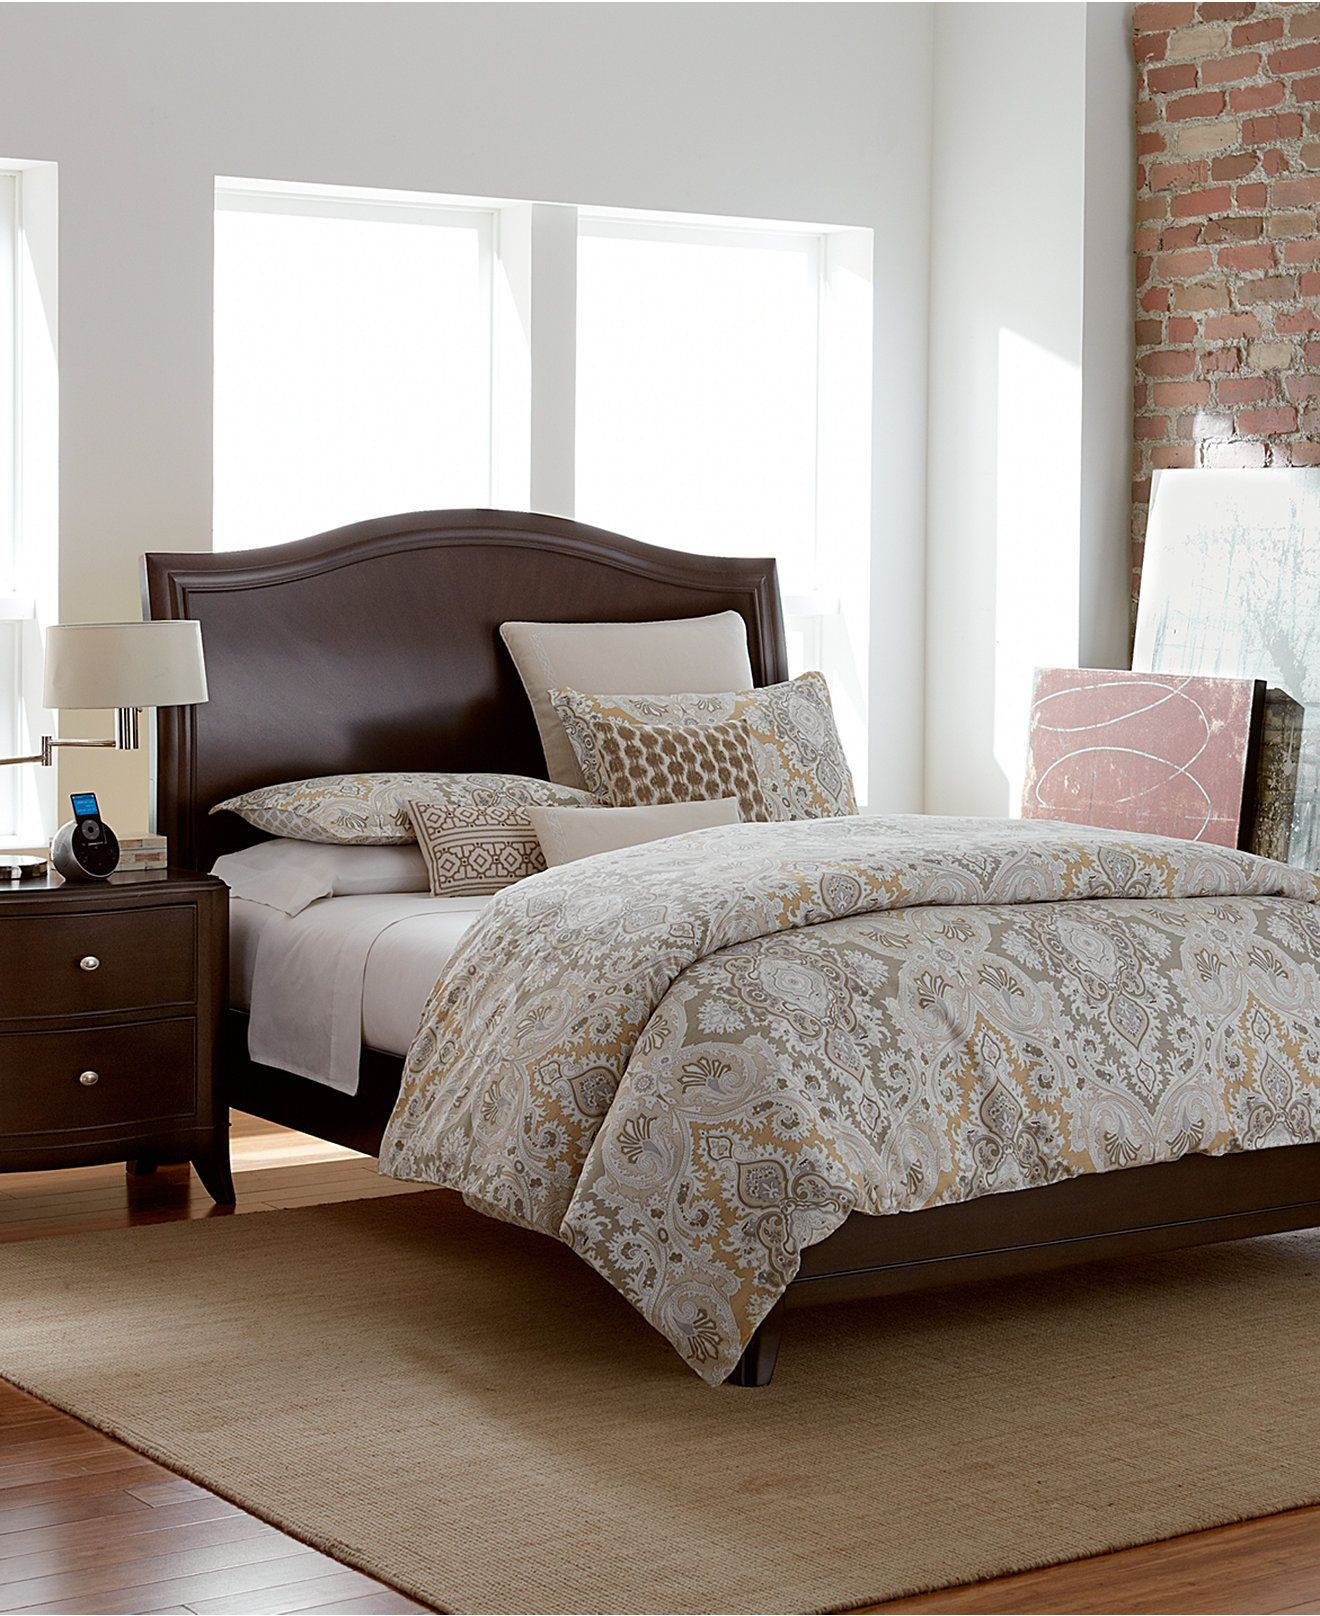 Nason Bedroom Furniture Collection